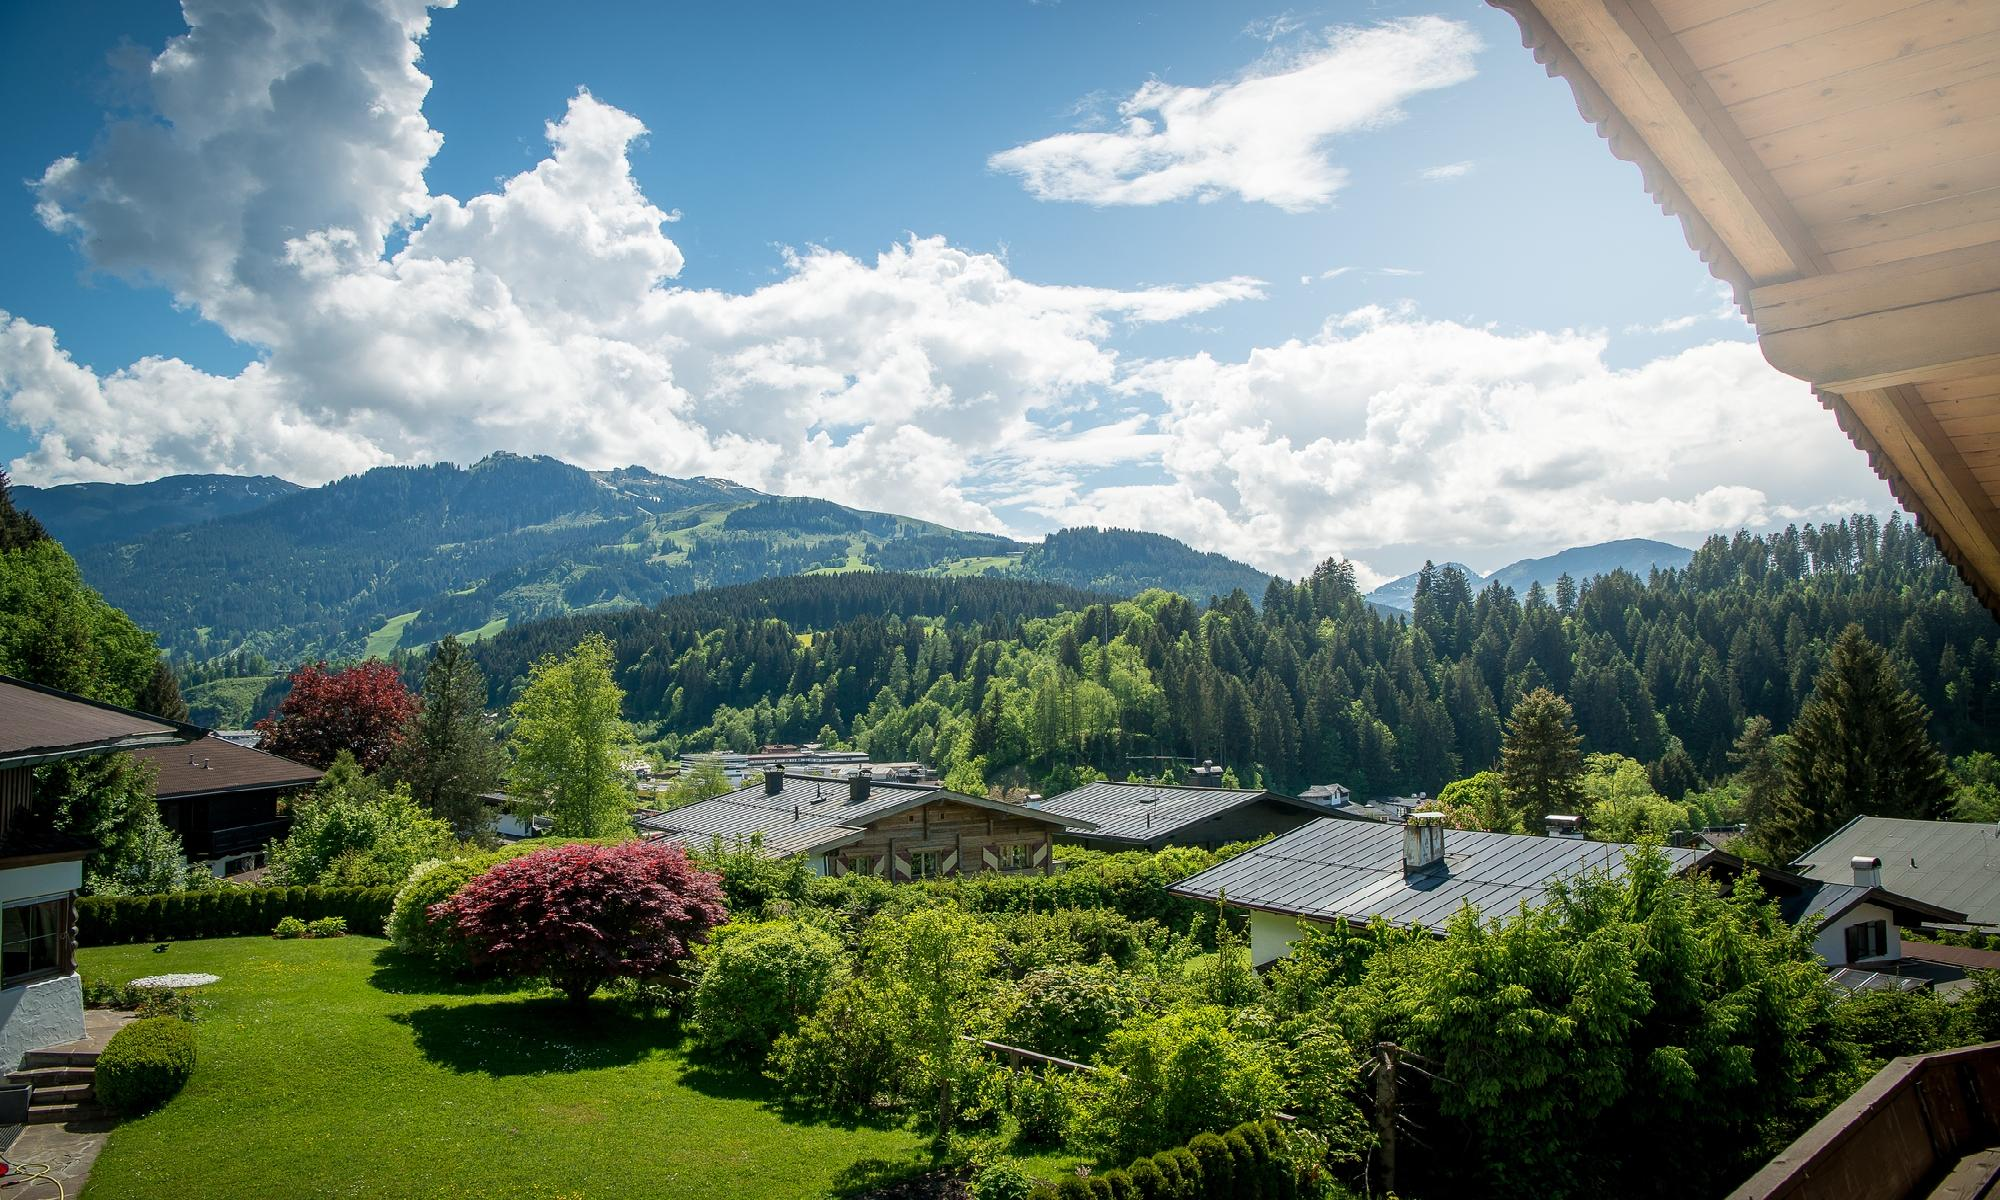 Spacious chalet in a sunny location of Kitzbühel For Sale - Kitzbuehel